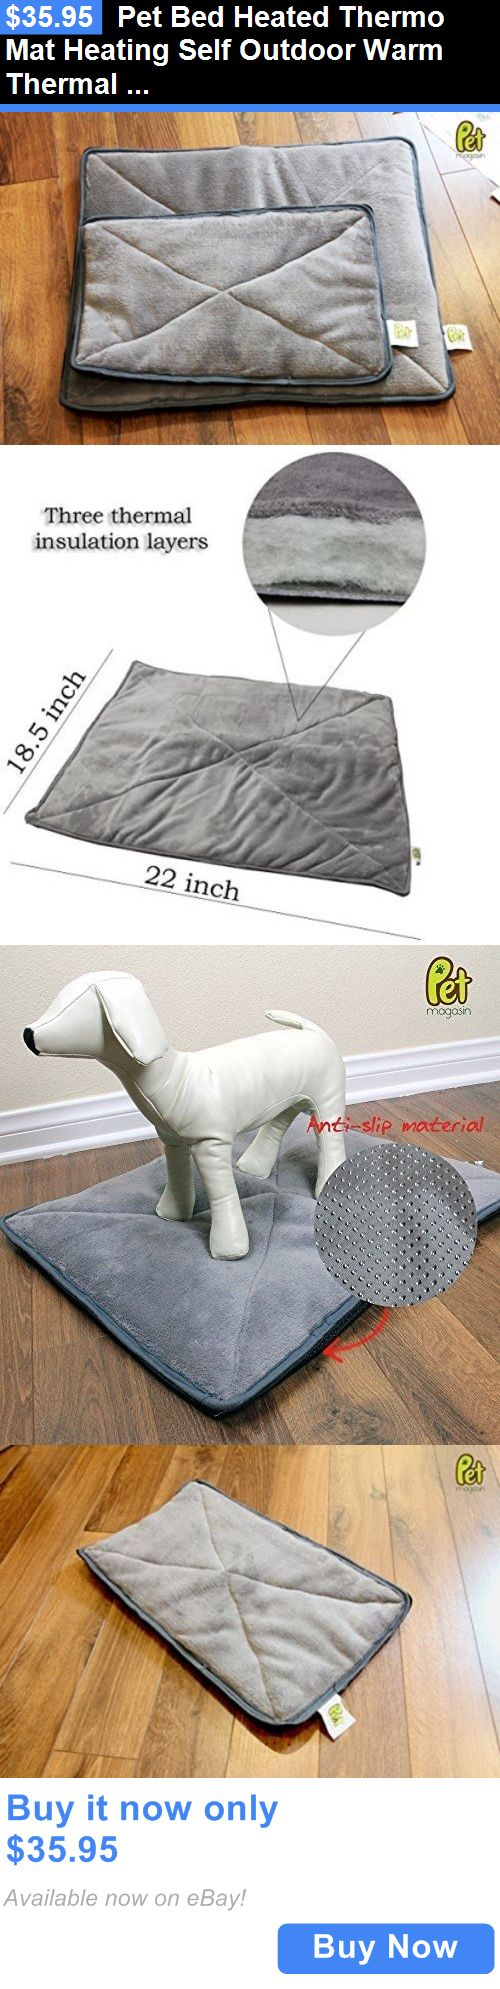 Animals Dog: Pet Bed Heated Thermo Mat Heating Self Outdoor Warm Thermal Dog House Pad 2 Pads BUY IT NOW ONLY: $35.95